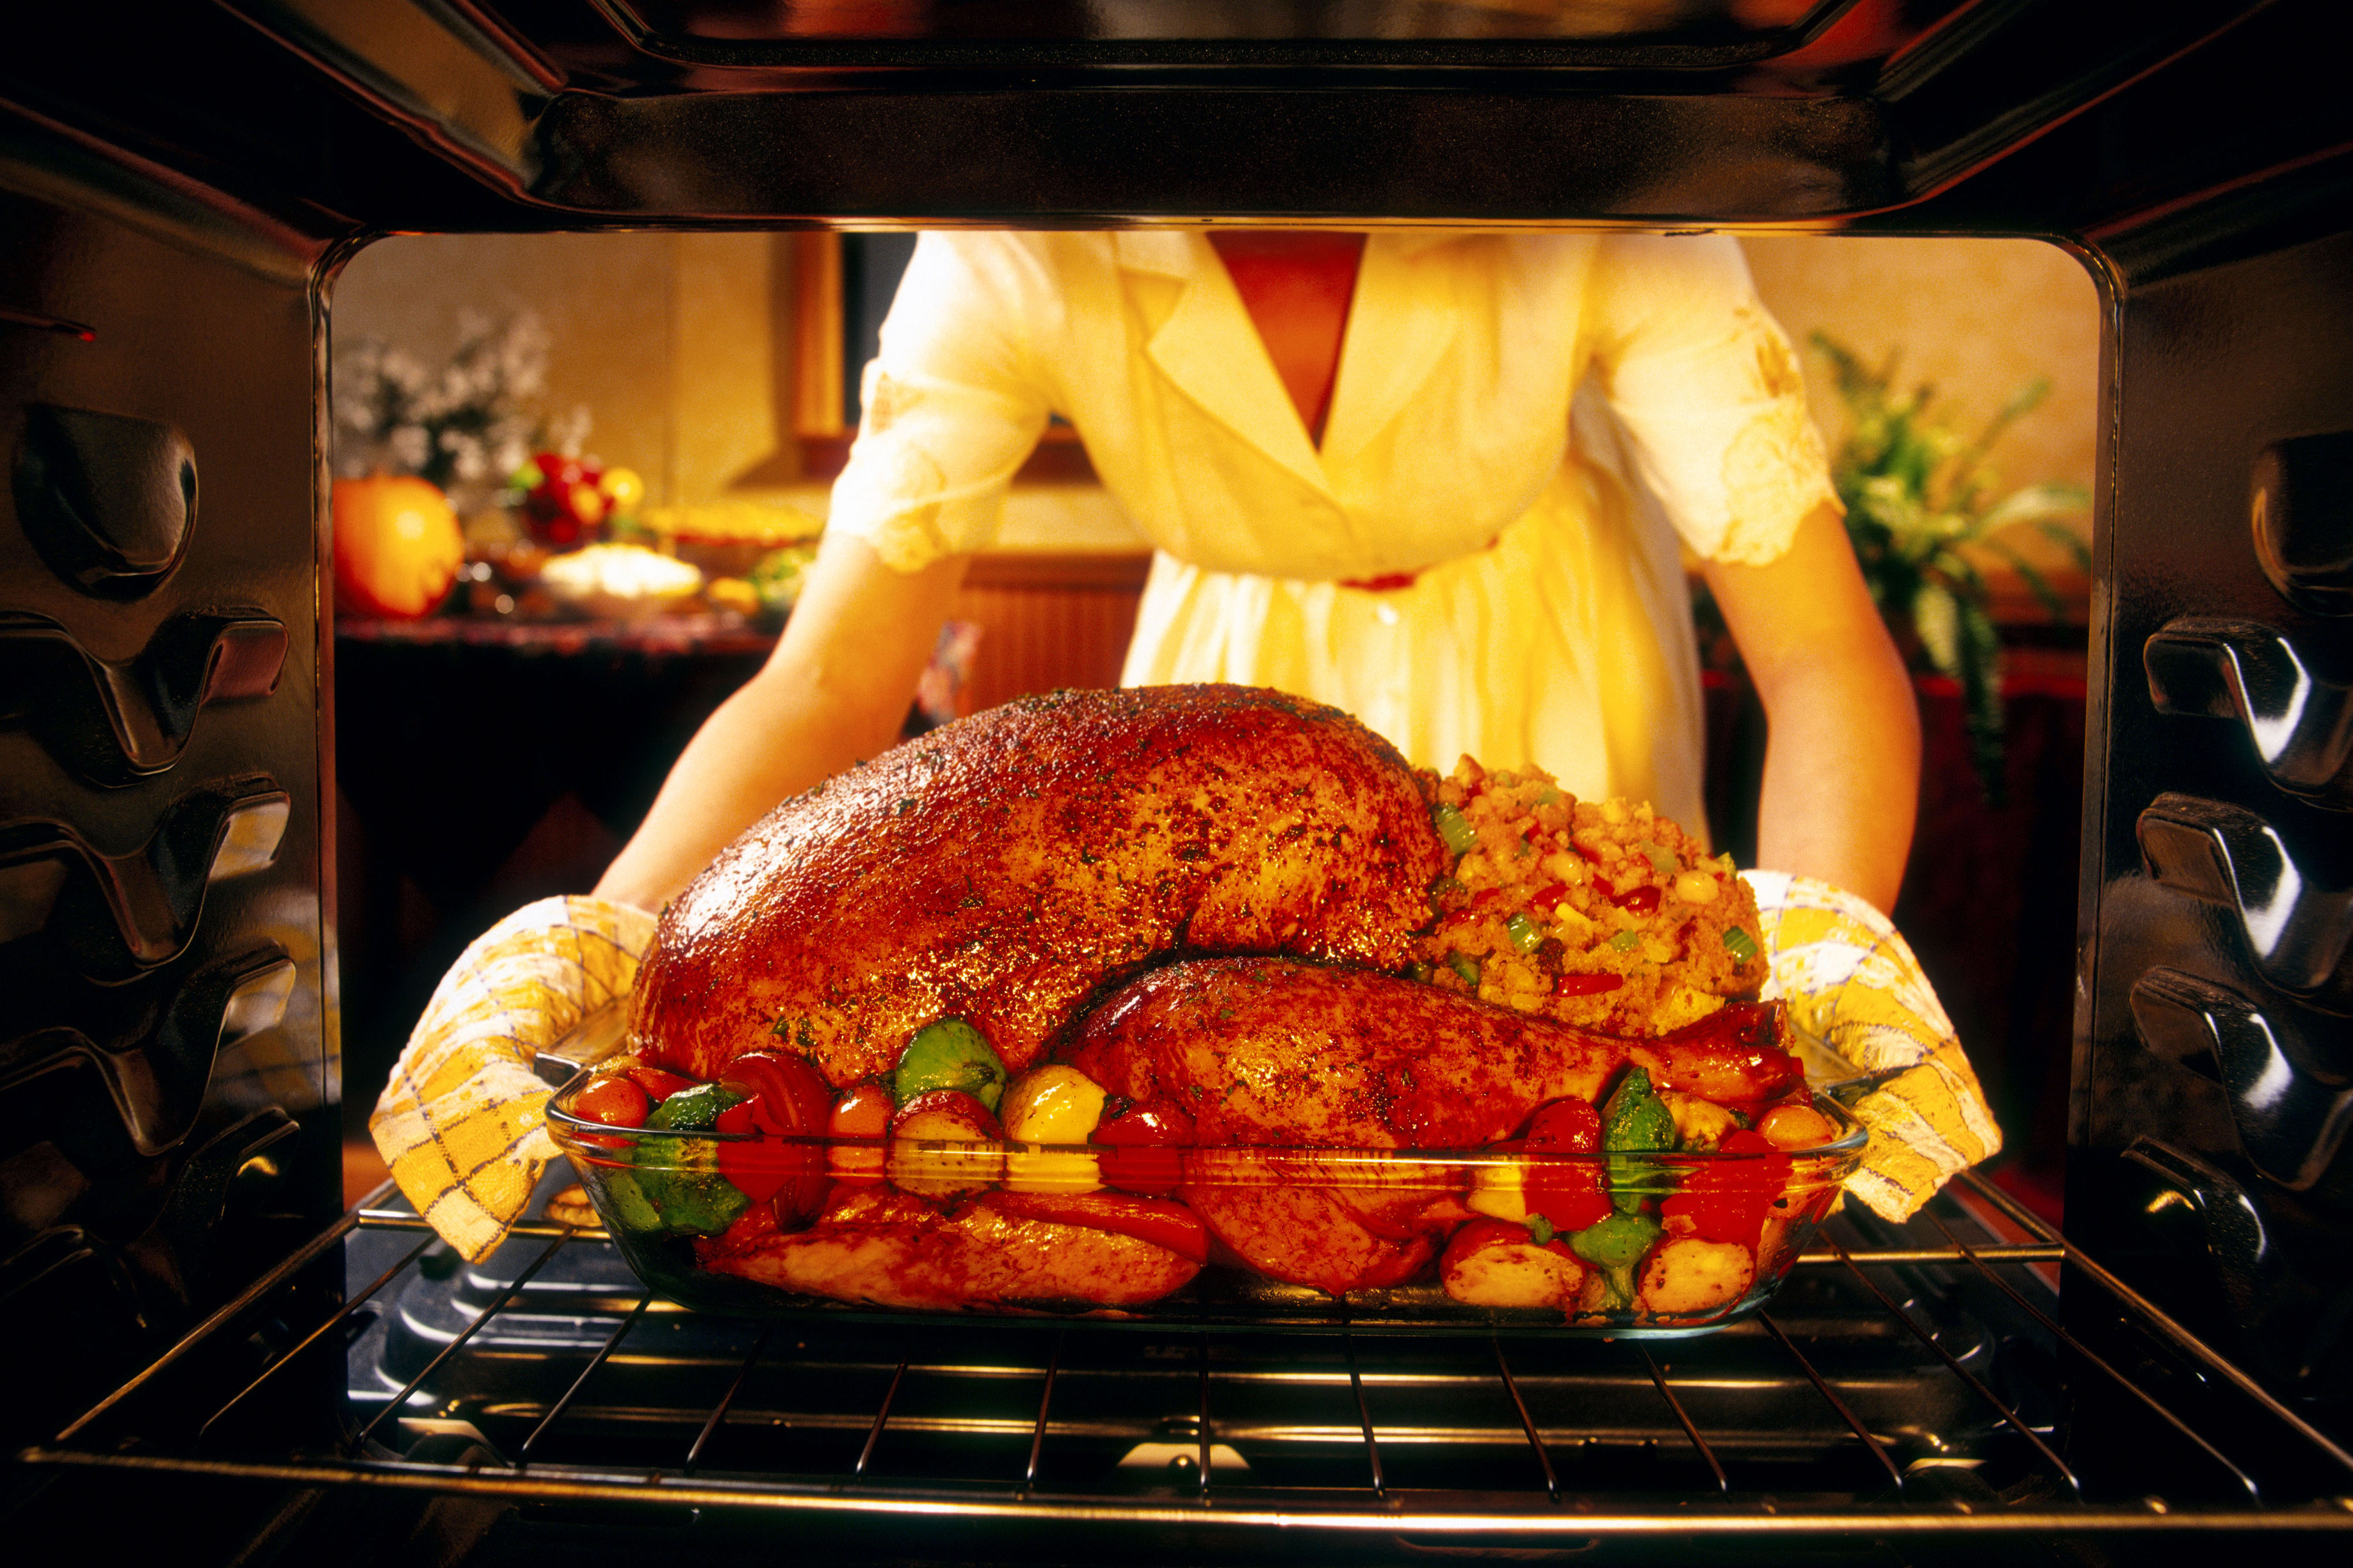 How to Tackle YourHoliday Meal with Only One Oven